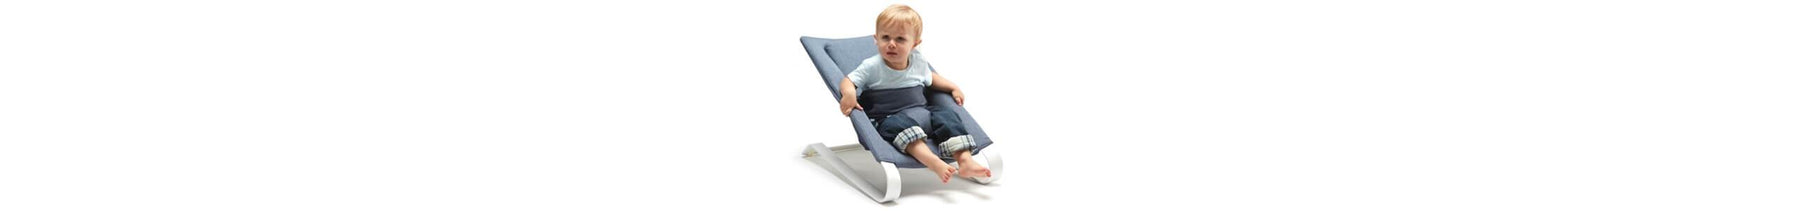 Baby boy seating on a denim blue bombol bamboo bouncer